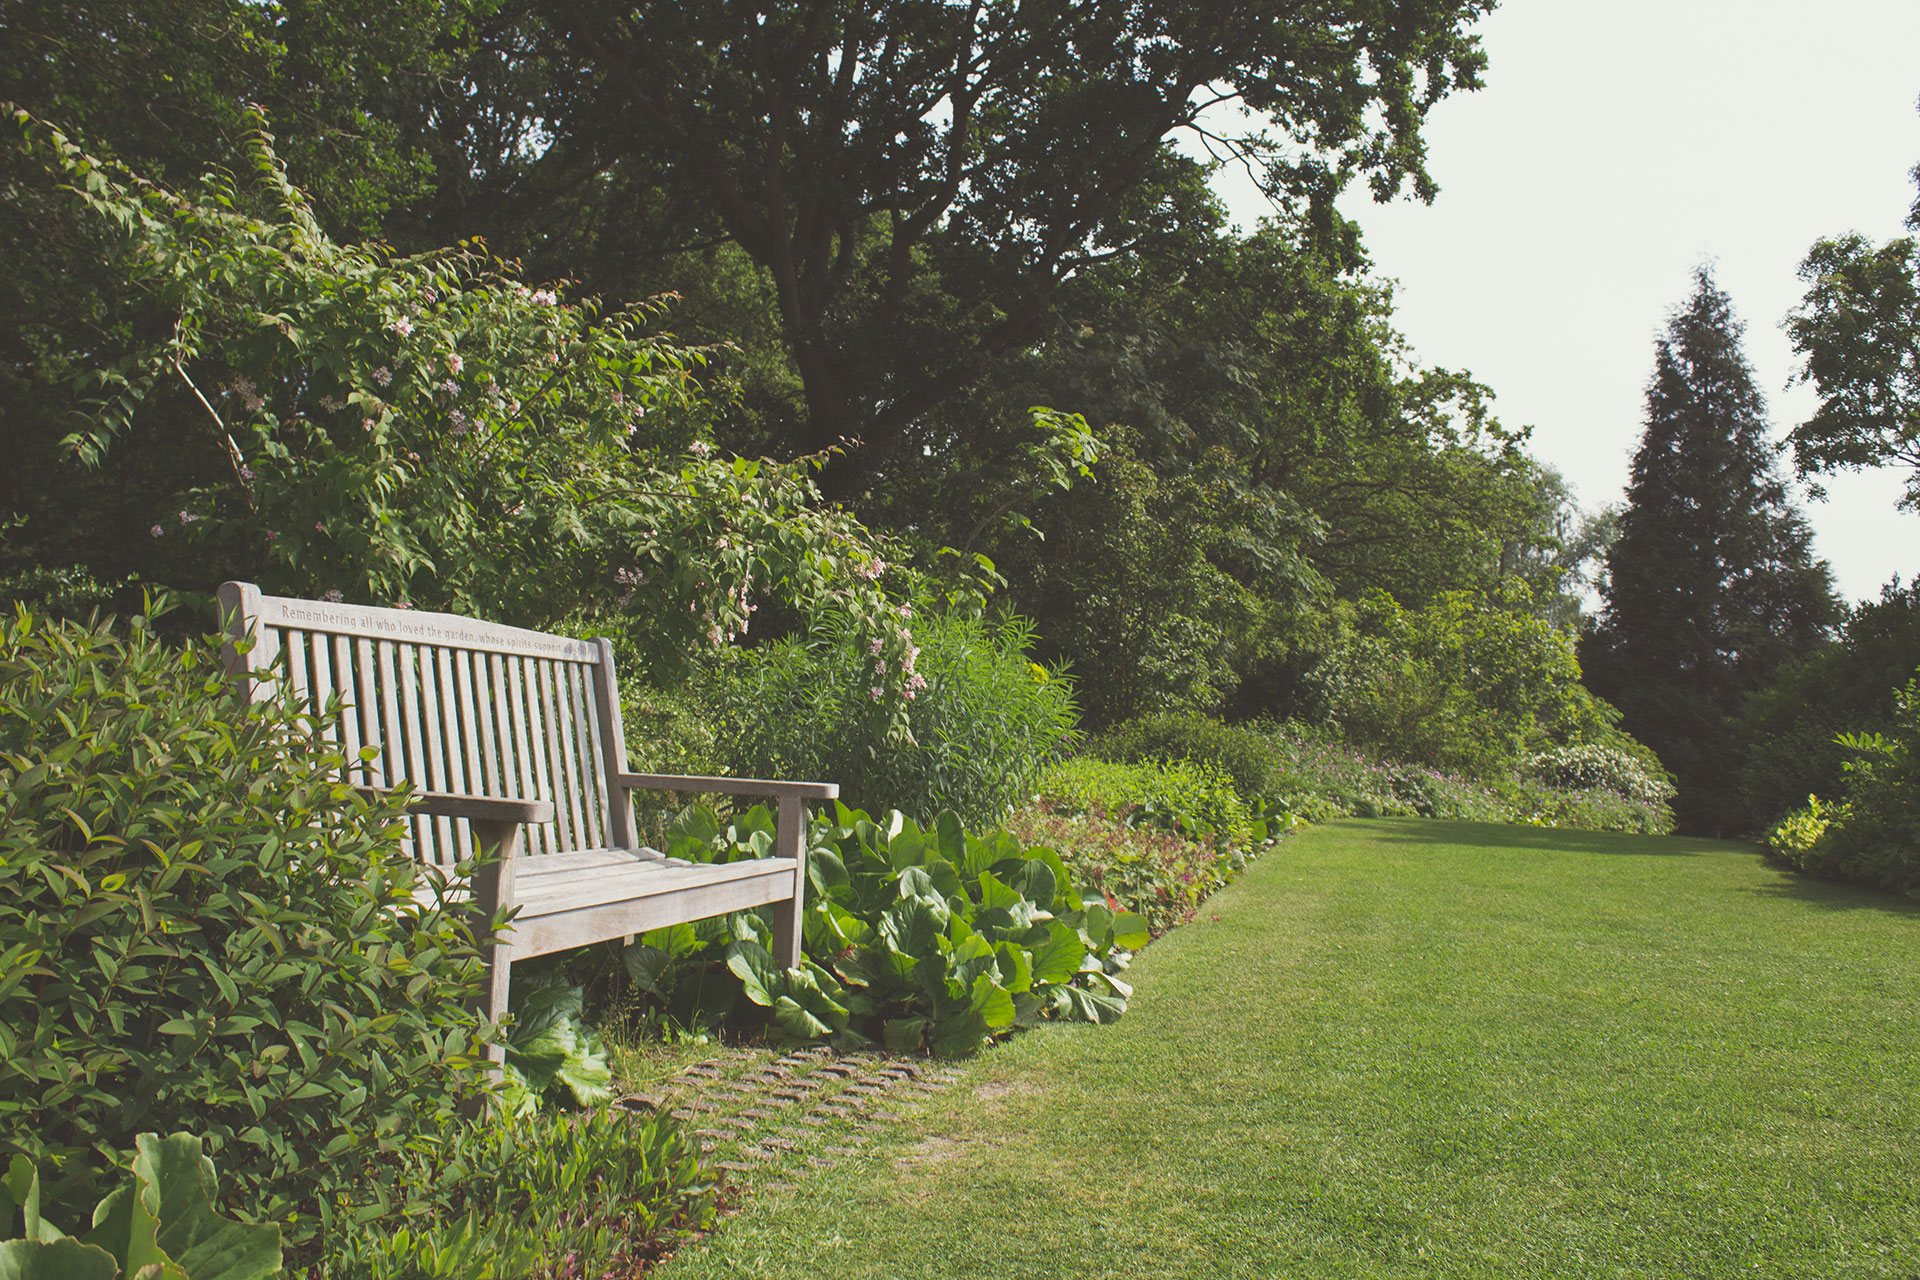 Environments for Wellbeing in Aged Care